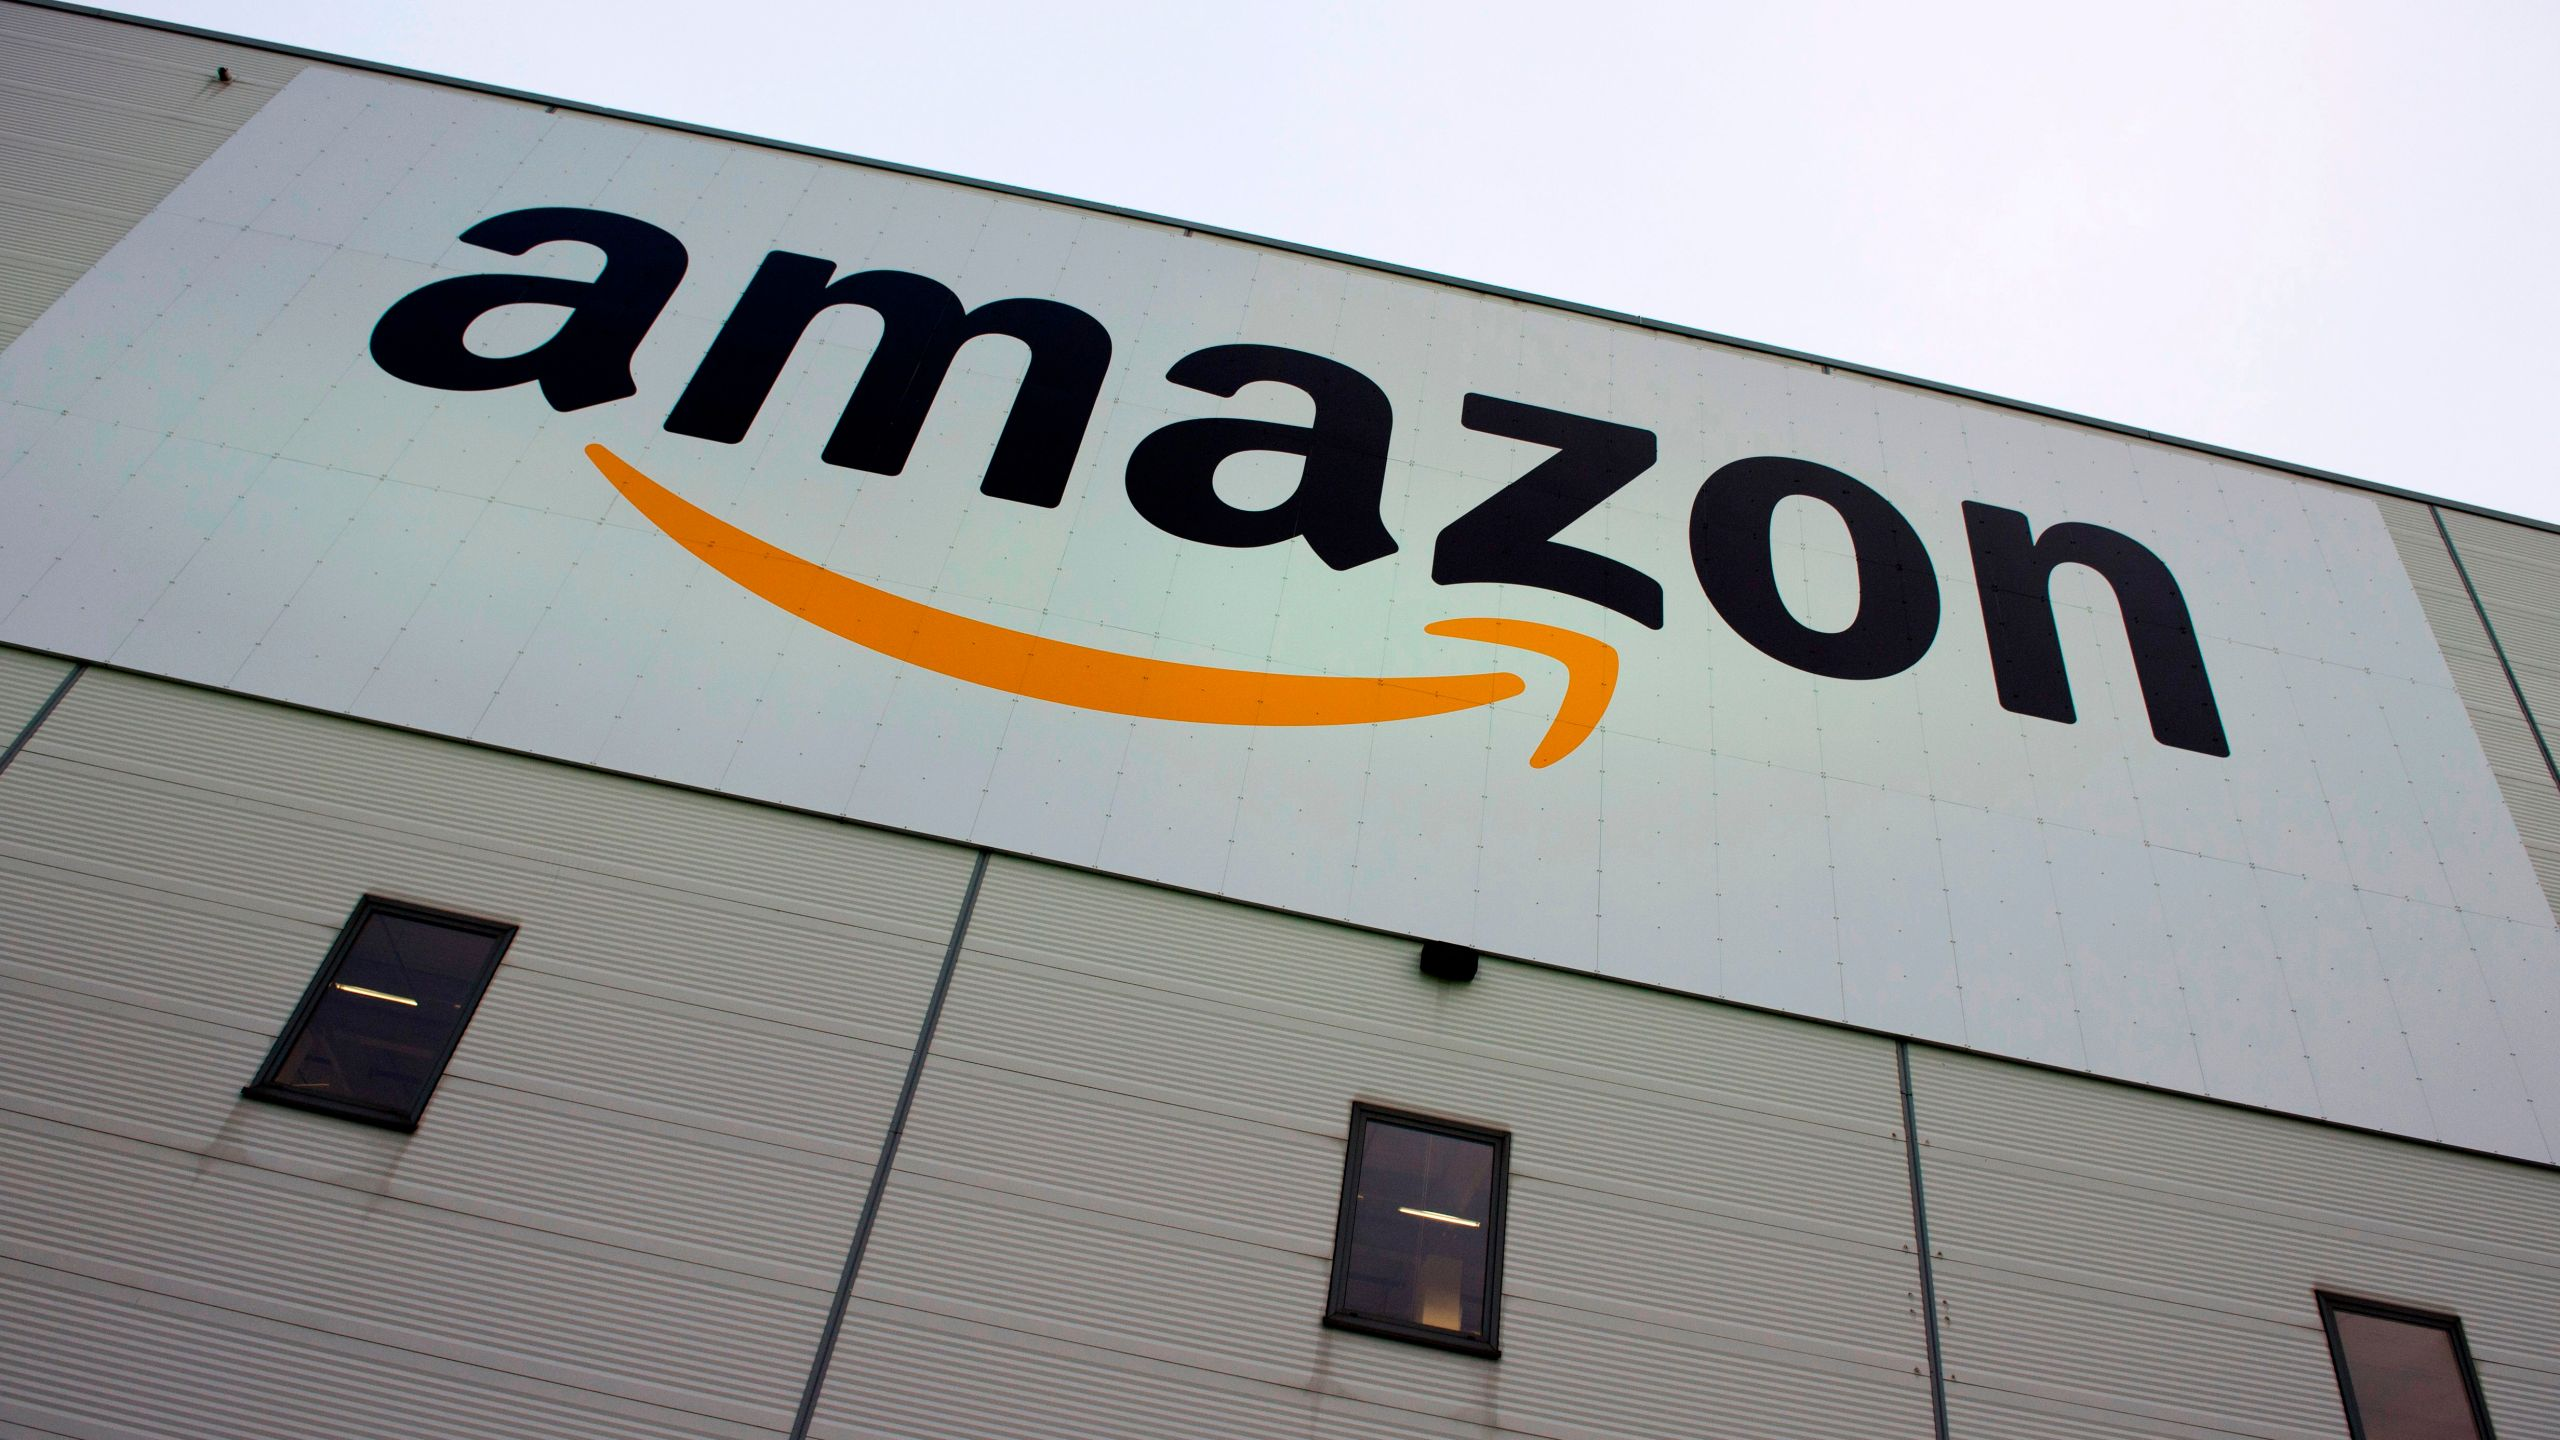 The logo of online retail giant Amazon is displayed on the Brieselang logistics center, west of Berlin on November 11, 2014. (JOHN MACDOUGALL/AFP via Getty Images)